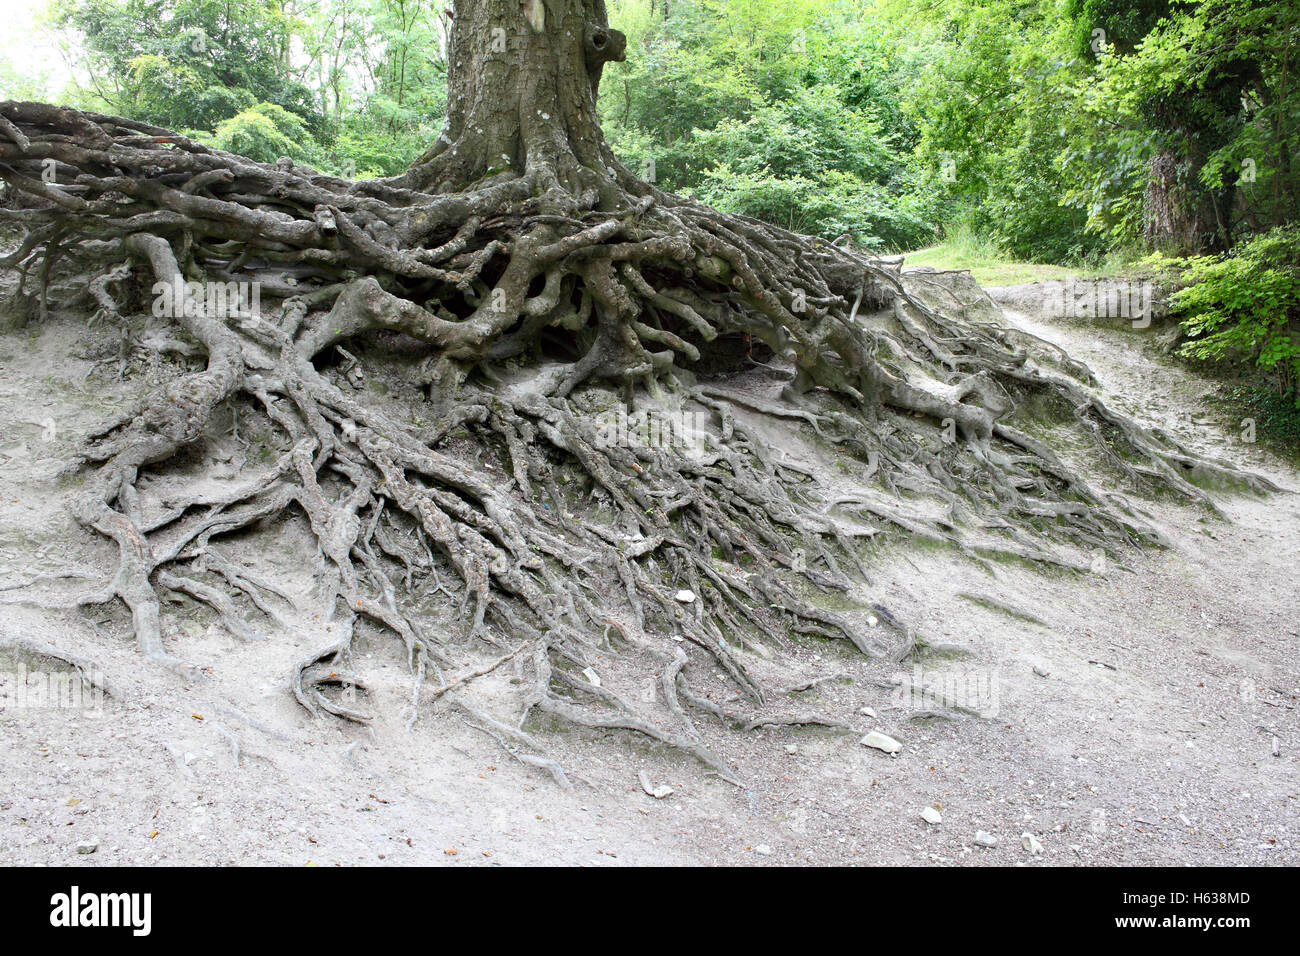 Exposed tree roots on a hillside in the South Downs National Park near Steyning, West Sussex. - Stock Image